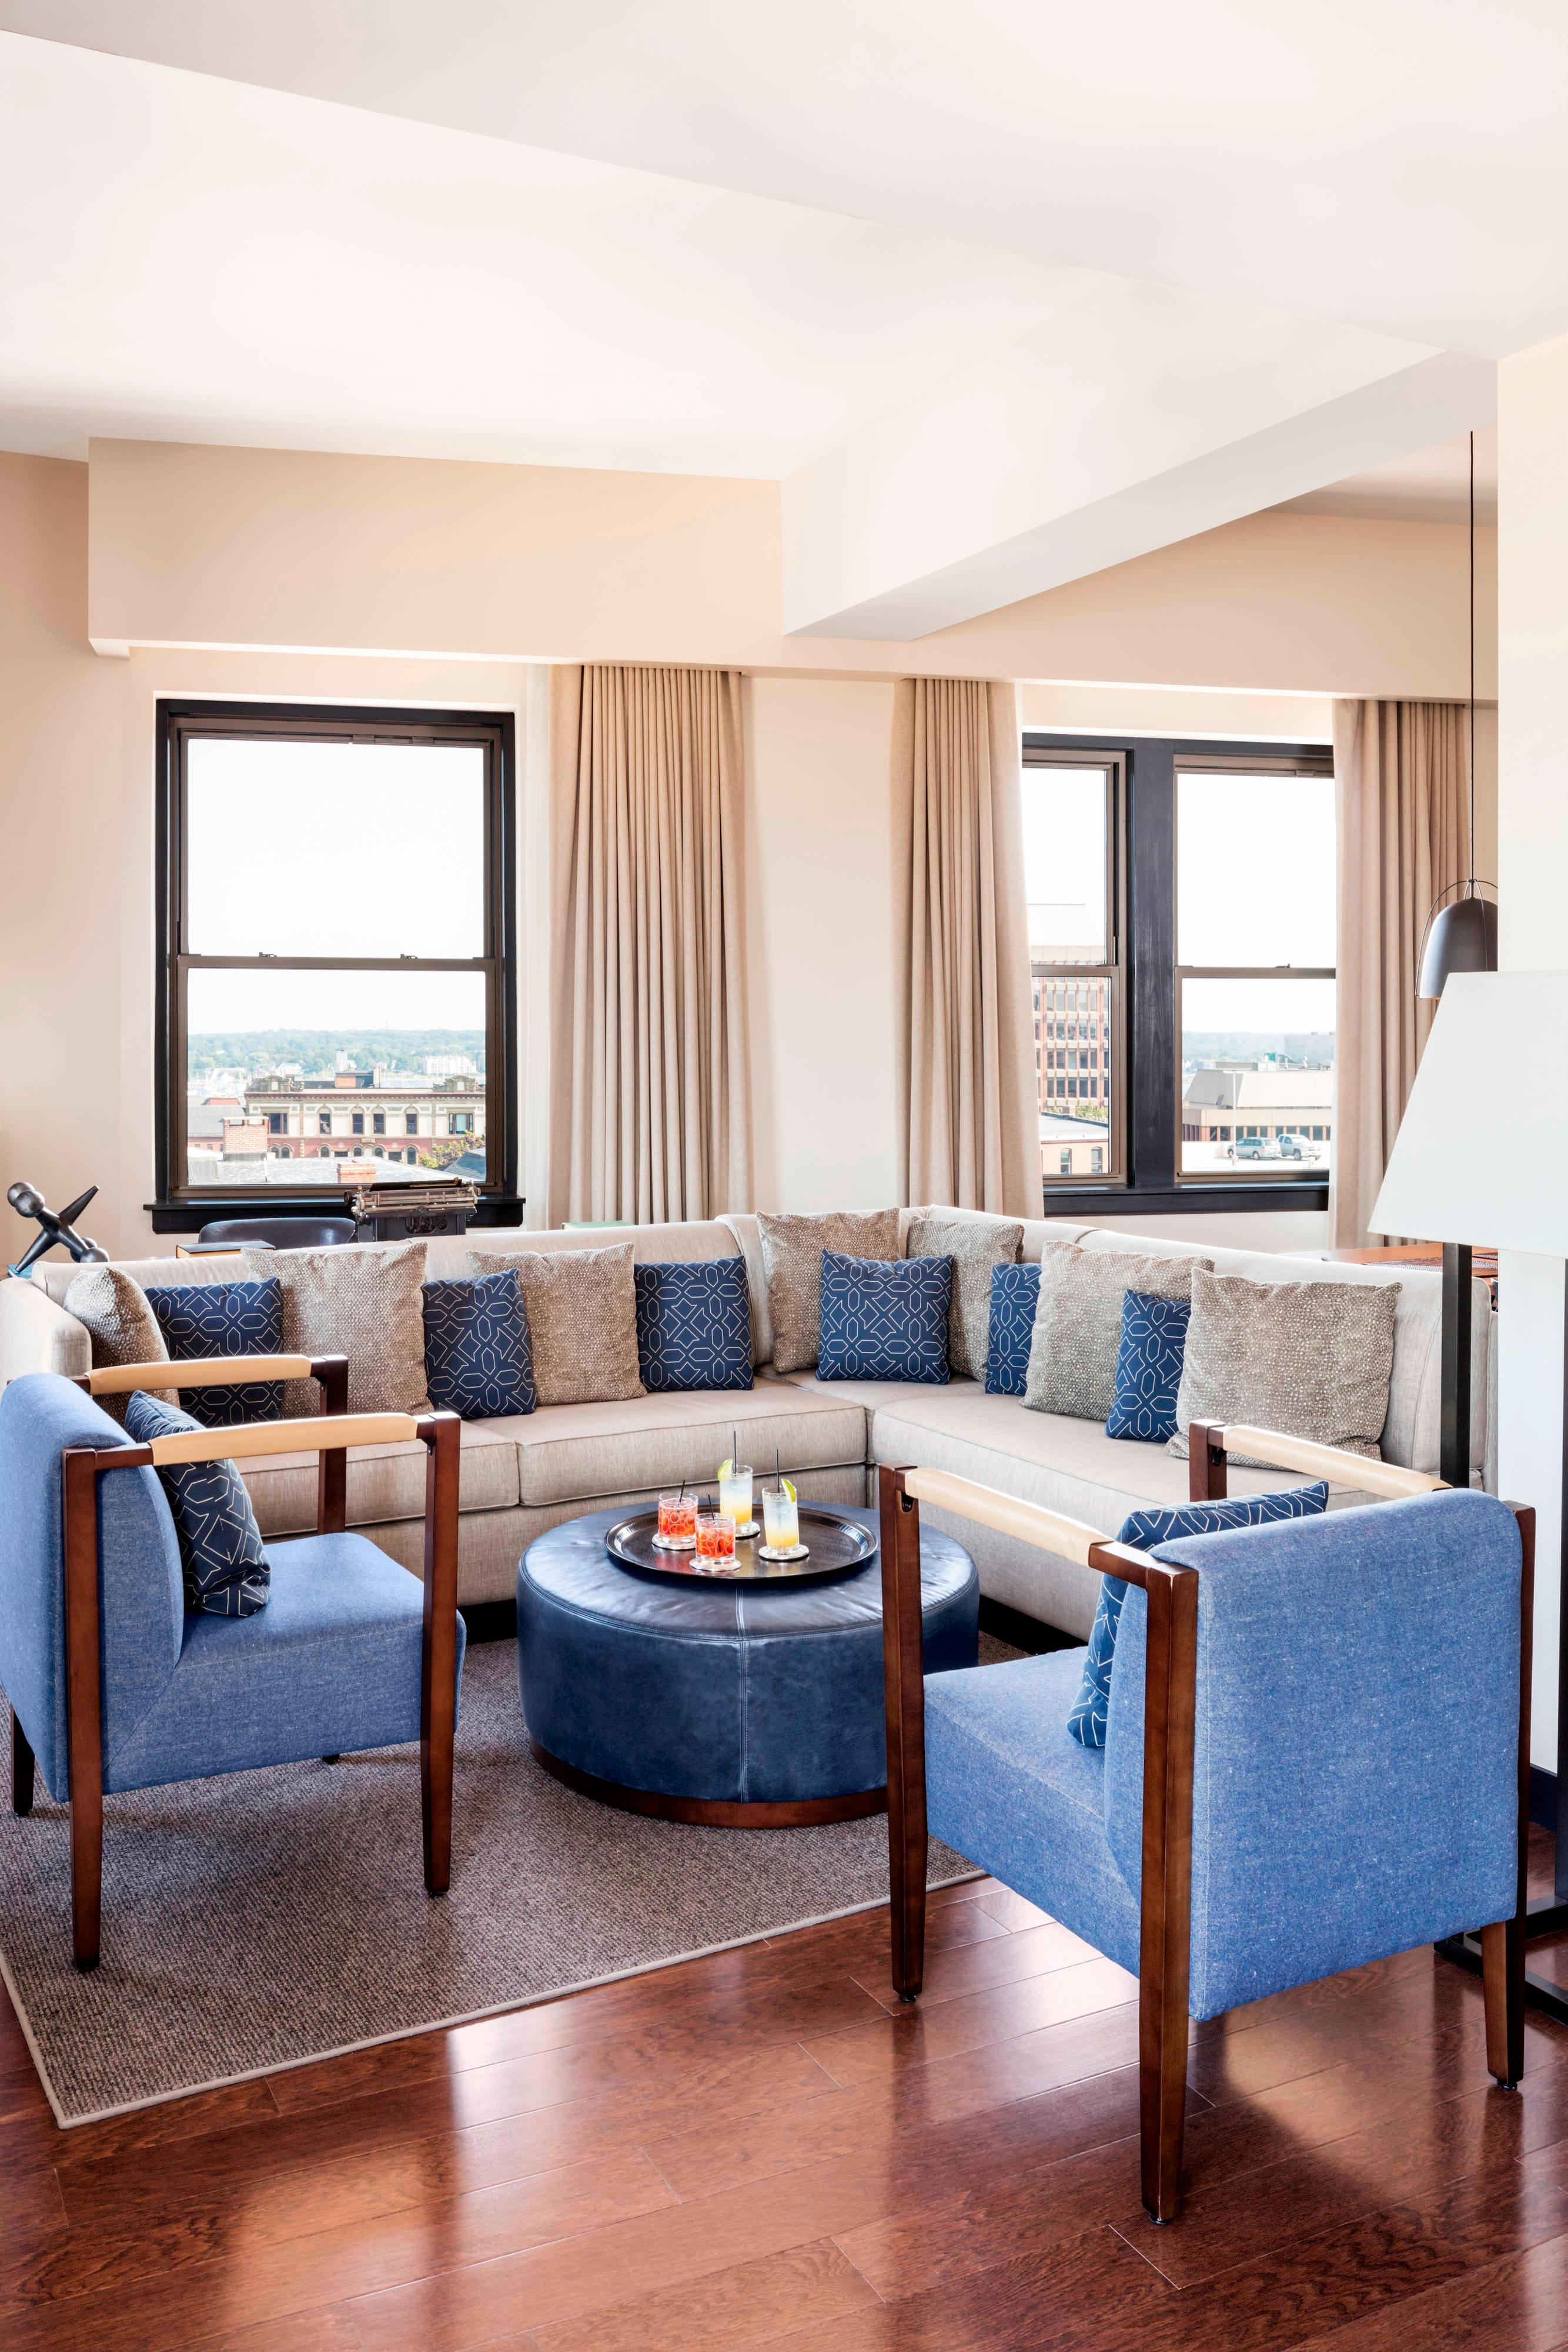 Living room seating area of the Penthouse Suite